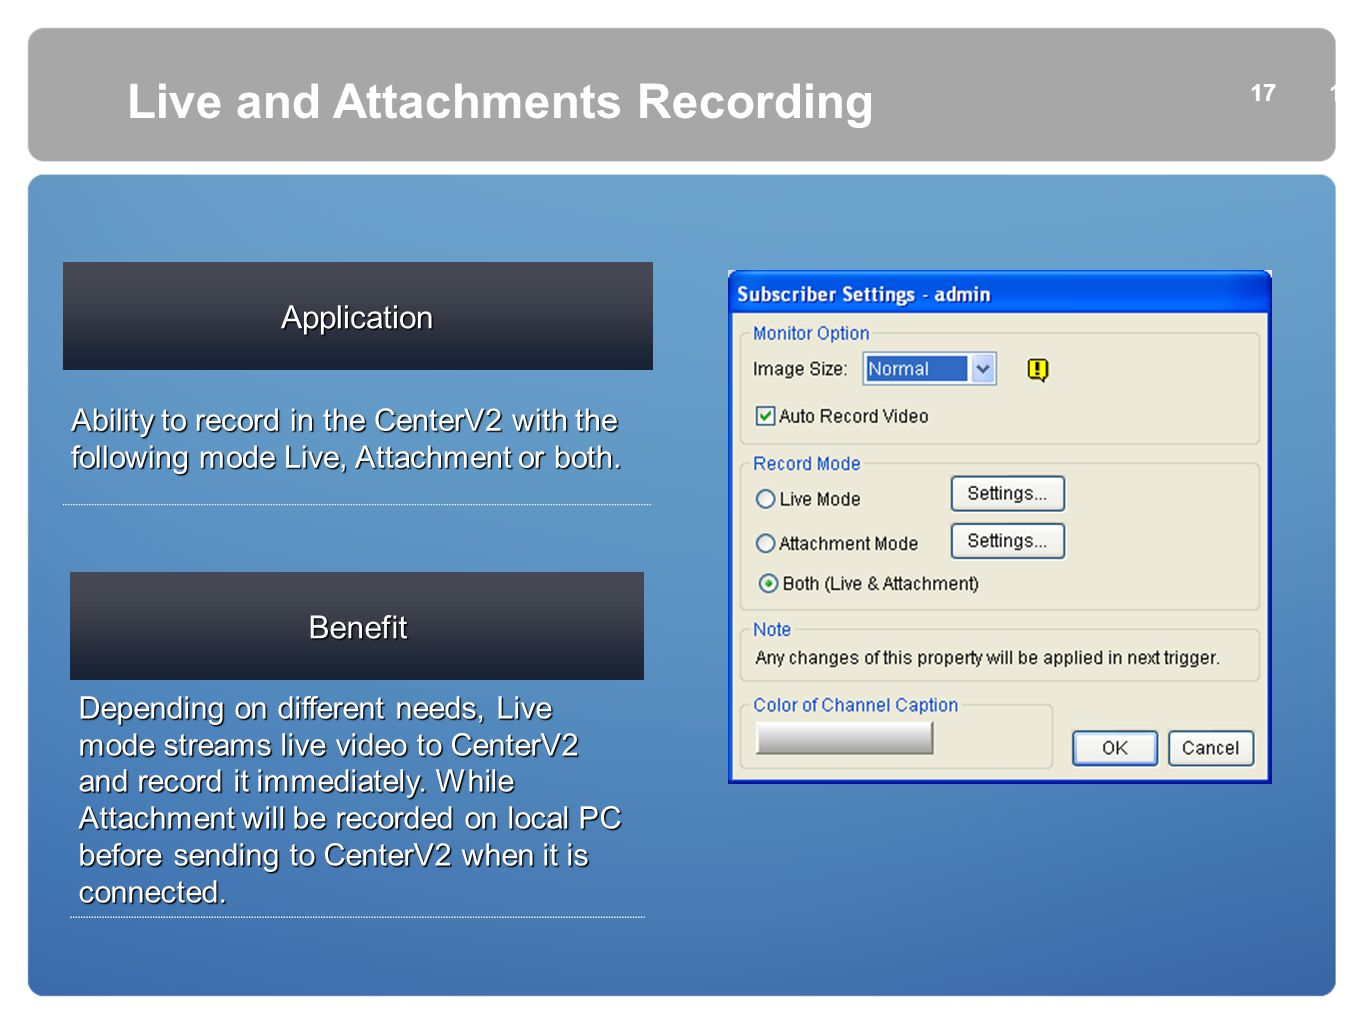 Live and Attachments Recording